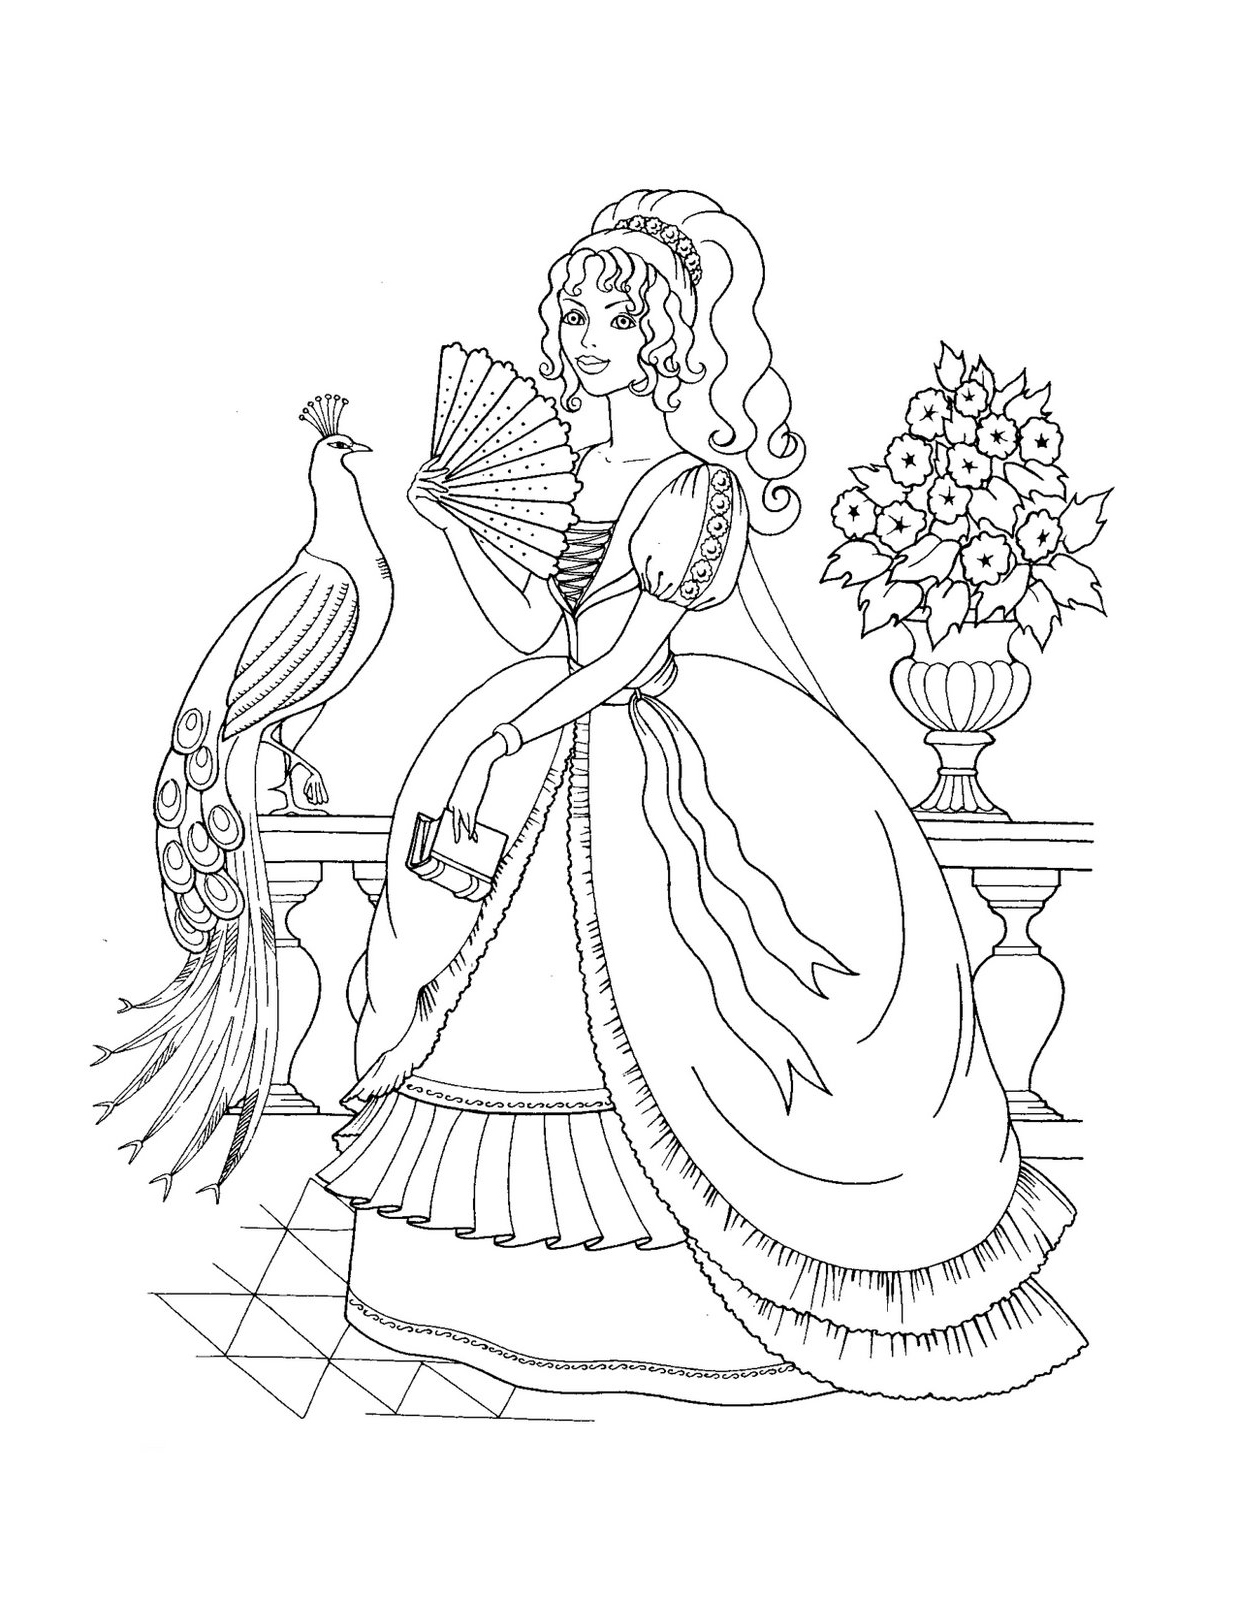 printable princess coloring sheets princess coloring pages print princess pictures to color printable sheets coloring princess